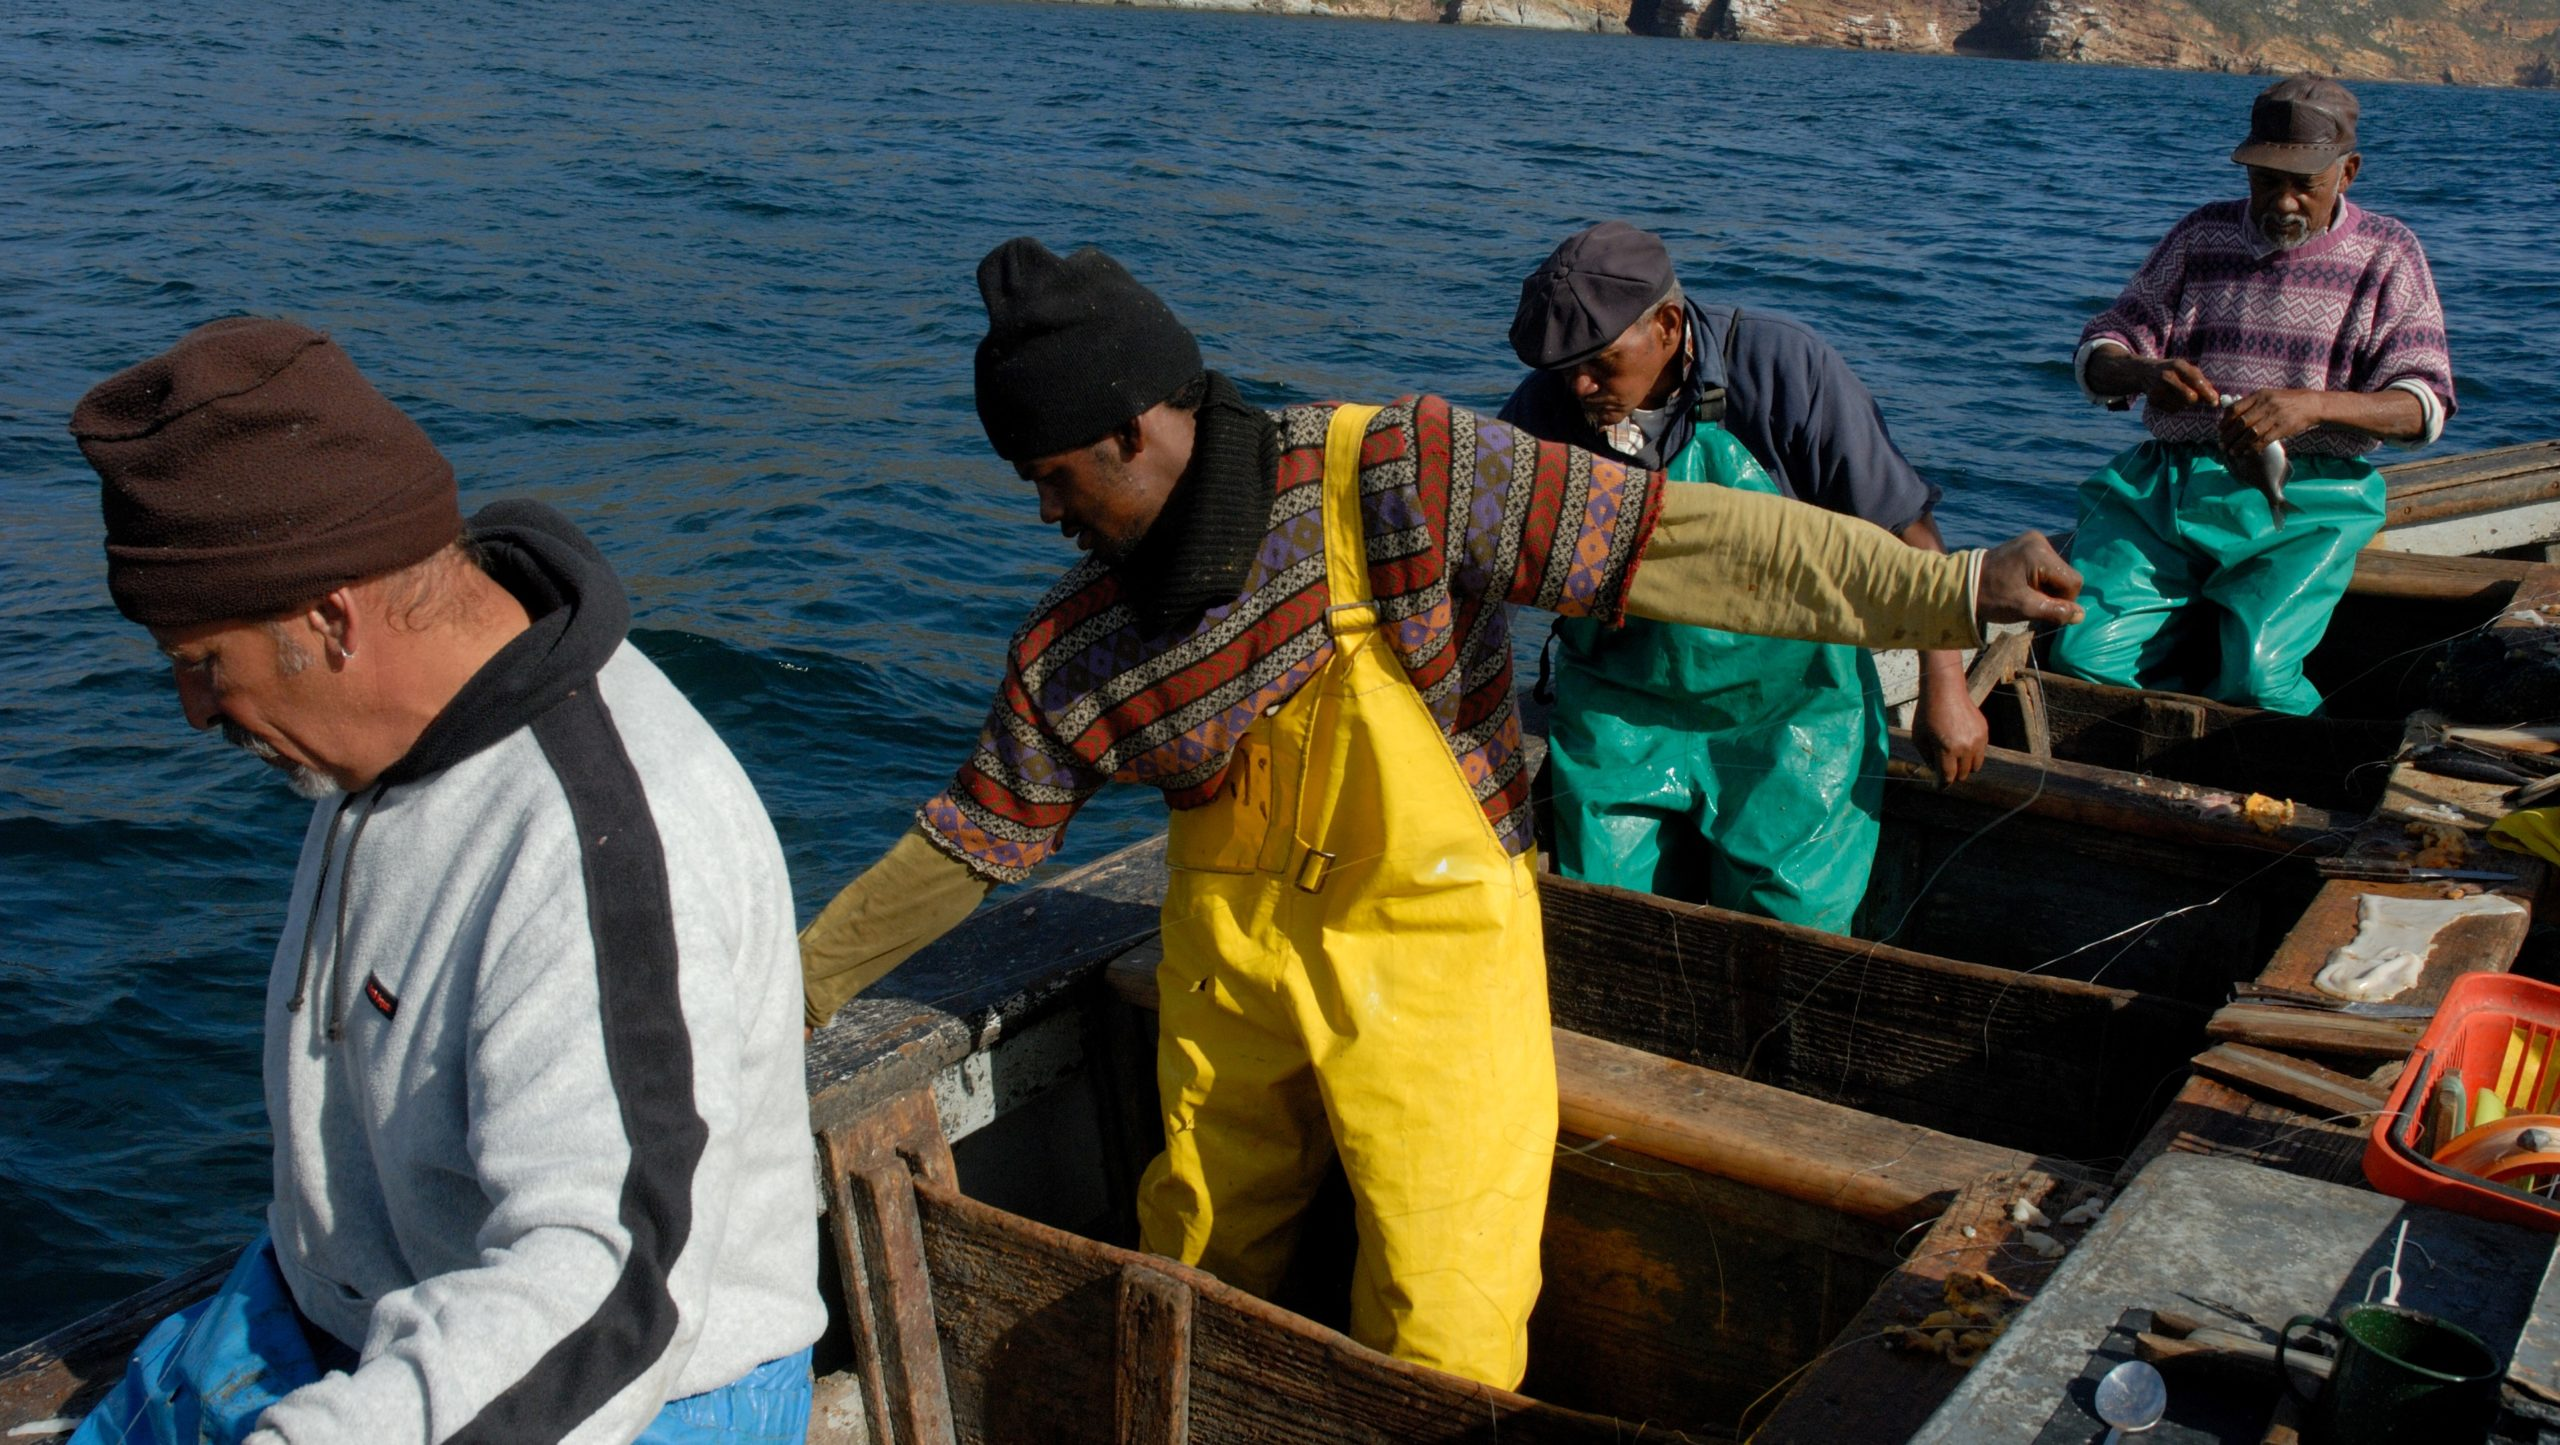 Covid-19: The impact on small-scale fishers—A perspective from Ocean View